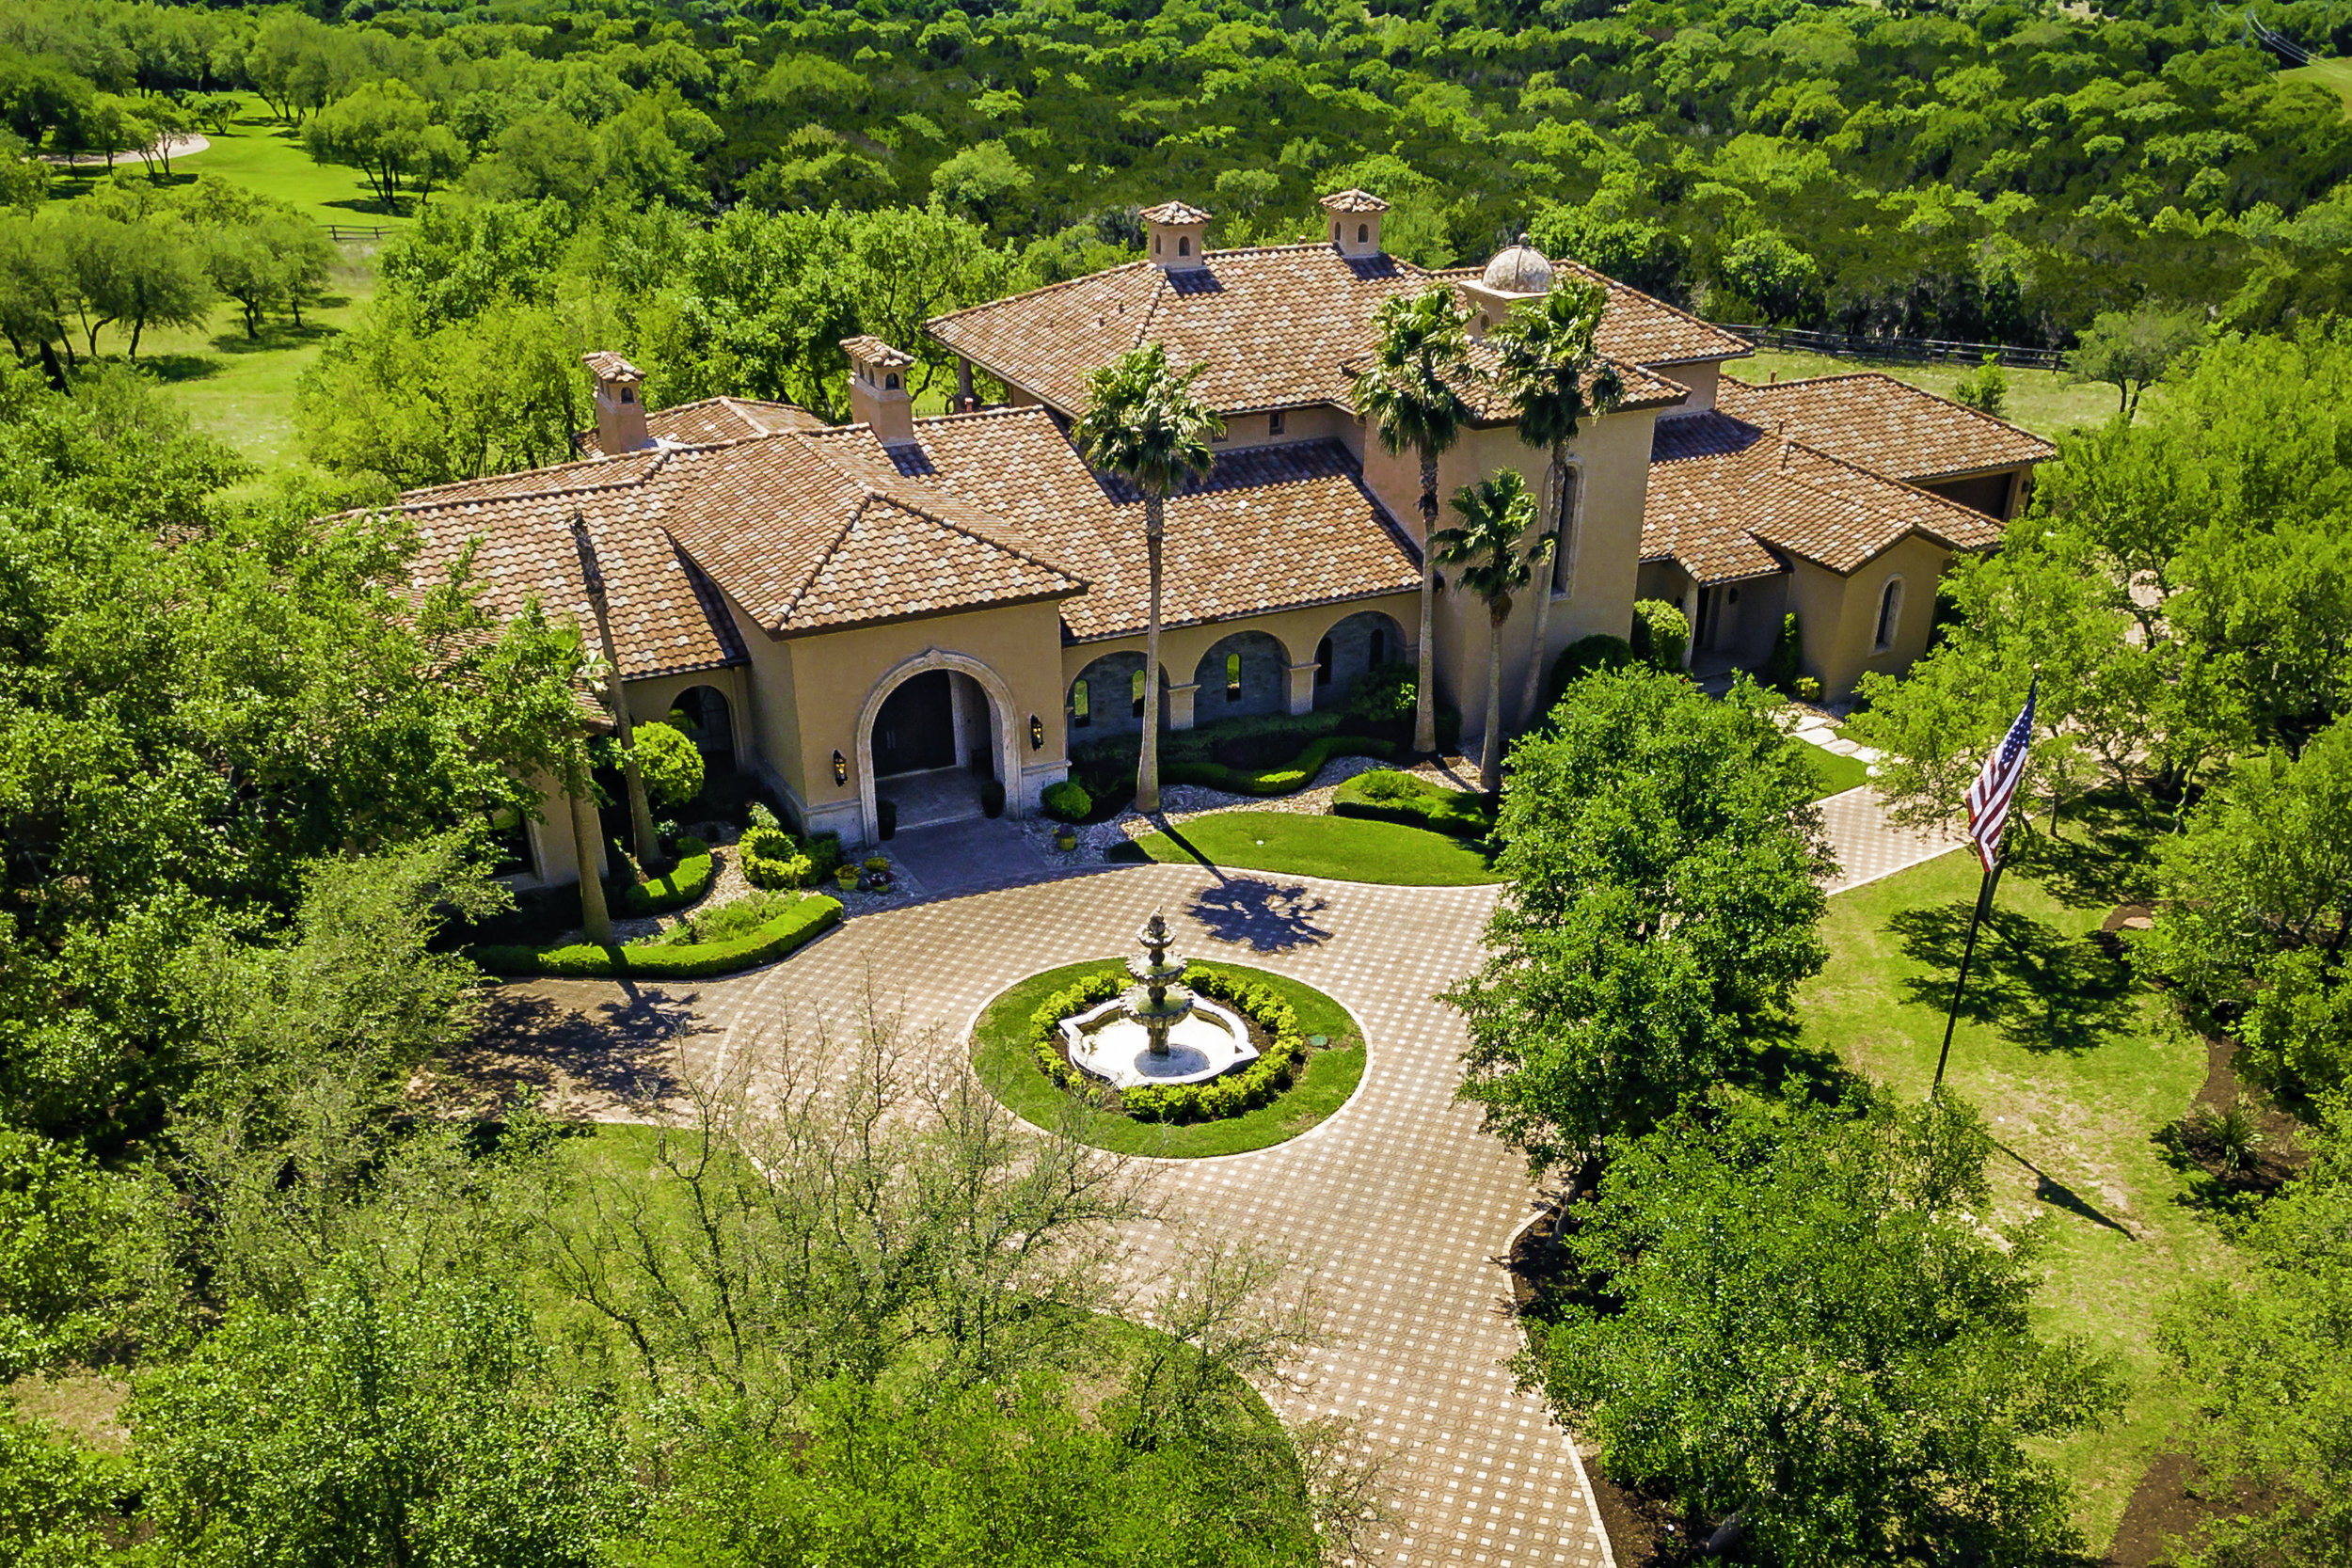 2502 Dominion Hill Aerial - Valerie DiFabio - April 2019-3.jpg